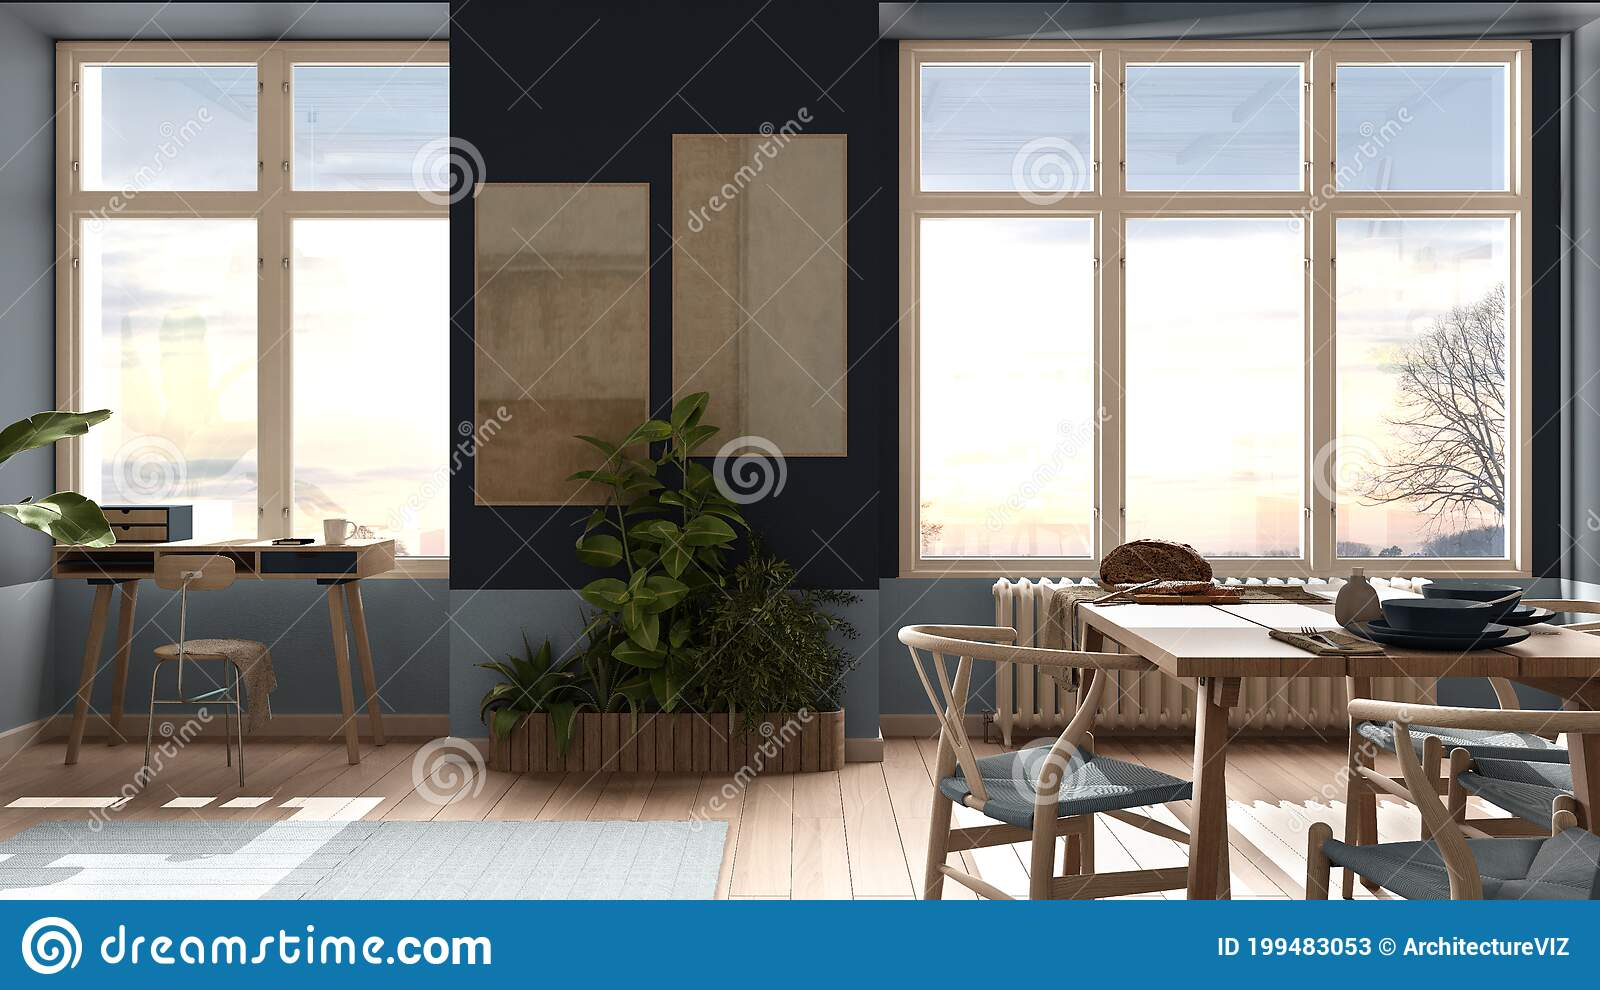 Country Living Room Eco Interior Design In Blue Tones Sustainable Parquet Dining Table With Chairs Potted Plants And Bamboo Stock Illustration Illustration Of Domestic Apartment 199483053